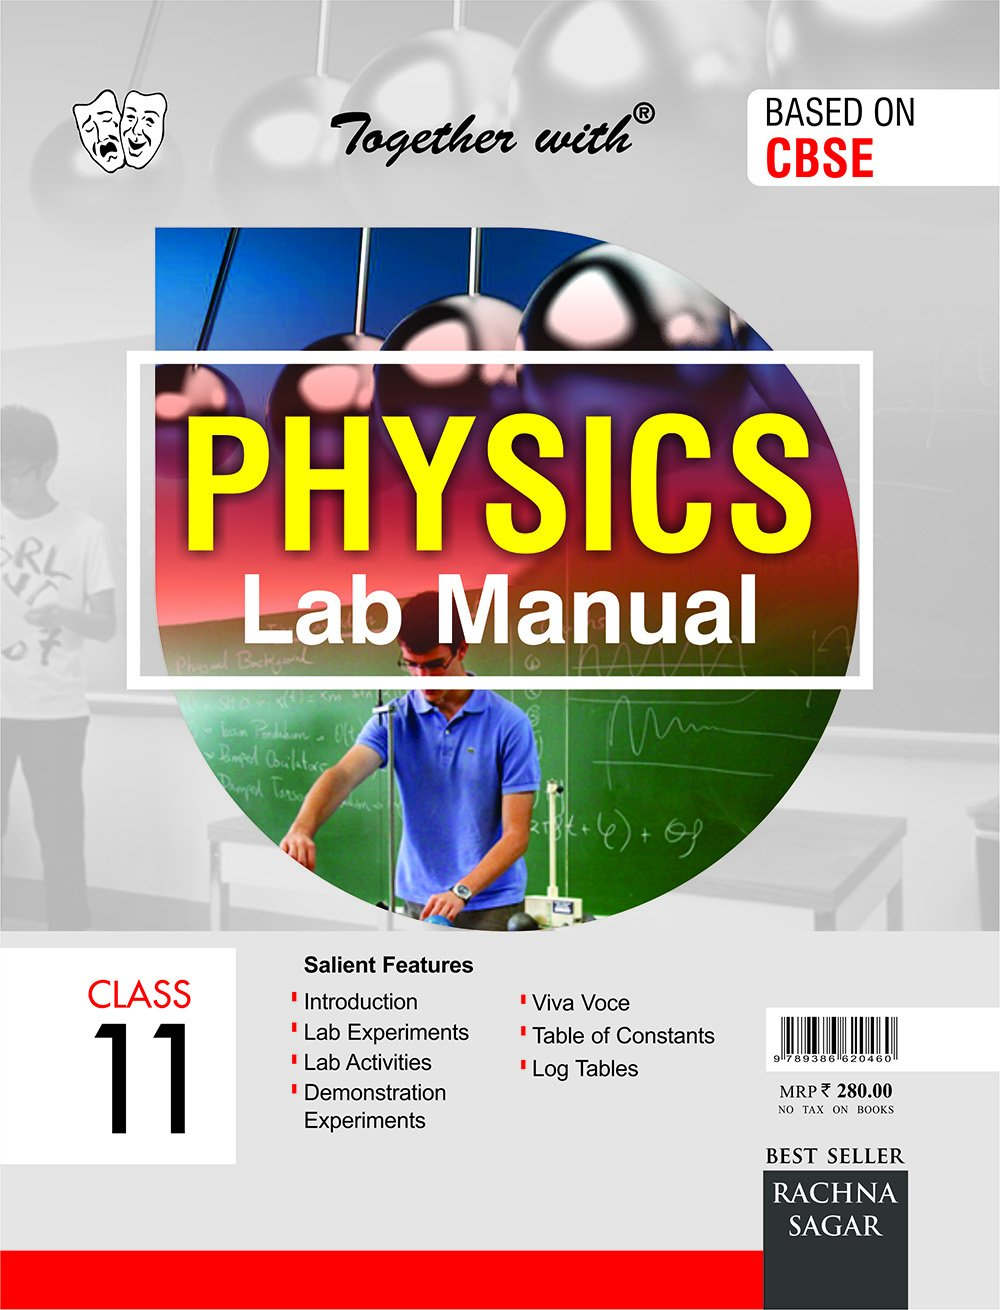 Together with CBSE Lab Manual Physics for Class 11 for 2019 Exam:  Amazon.in: R.S. Dass, M.K. Gandhi, Abhishek, Rajendra Shah: Books